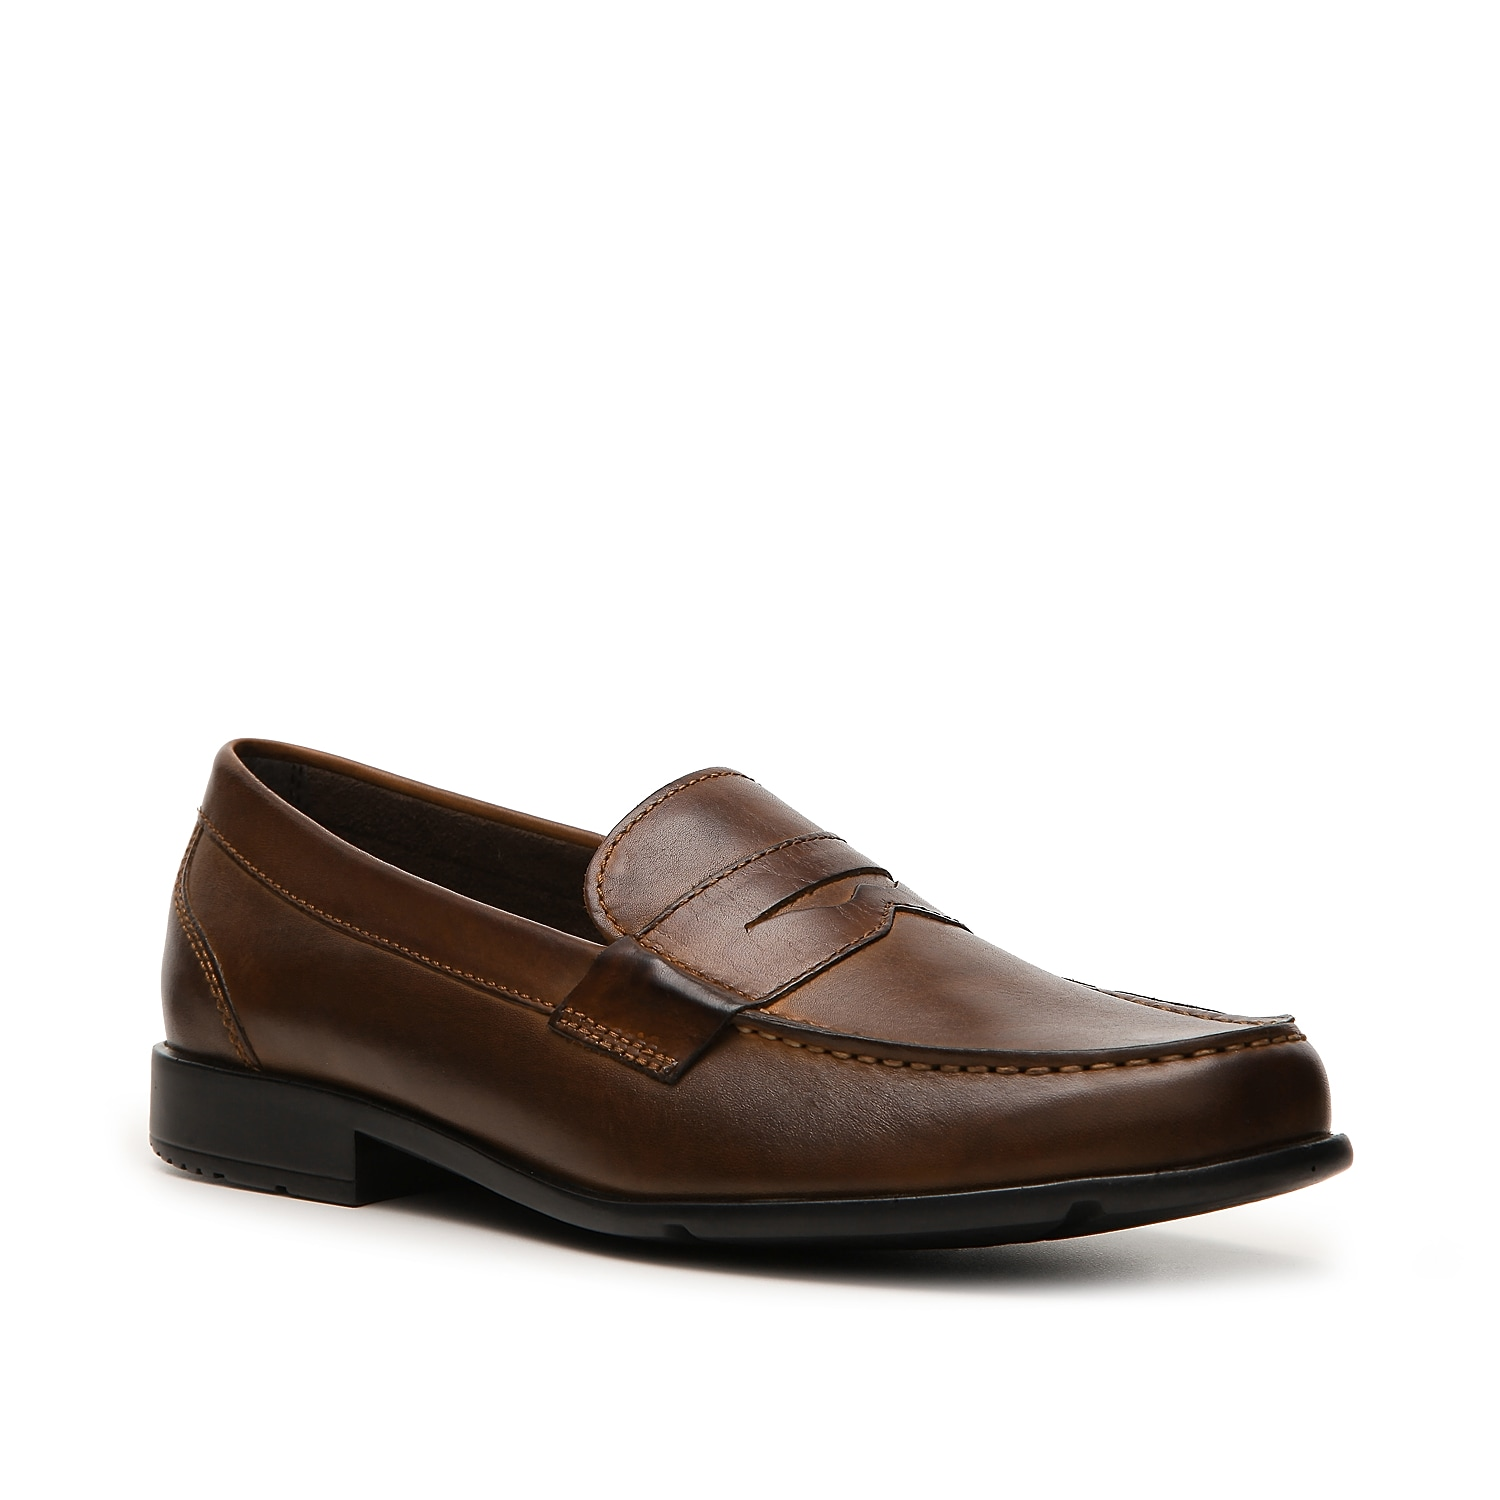 Comfort and style collide in this classic penny loafer from Rockport! Featuring sport technology for superior comfort and a stylish yet traditional design, this slip-on shoe will keep you looking and feeling good all day long.